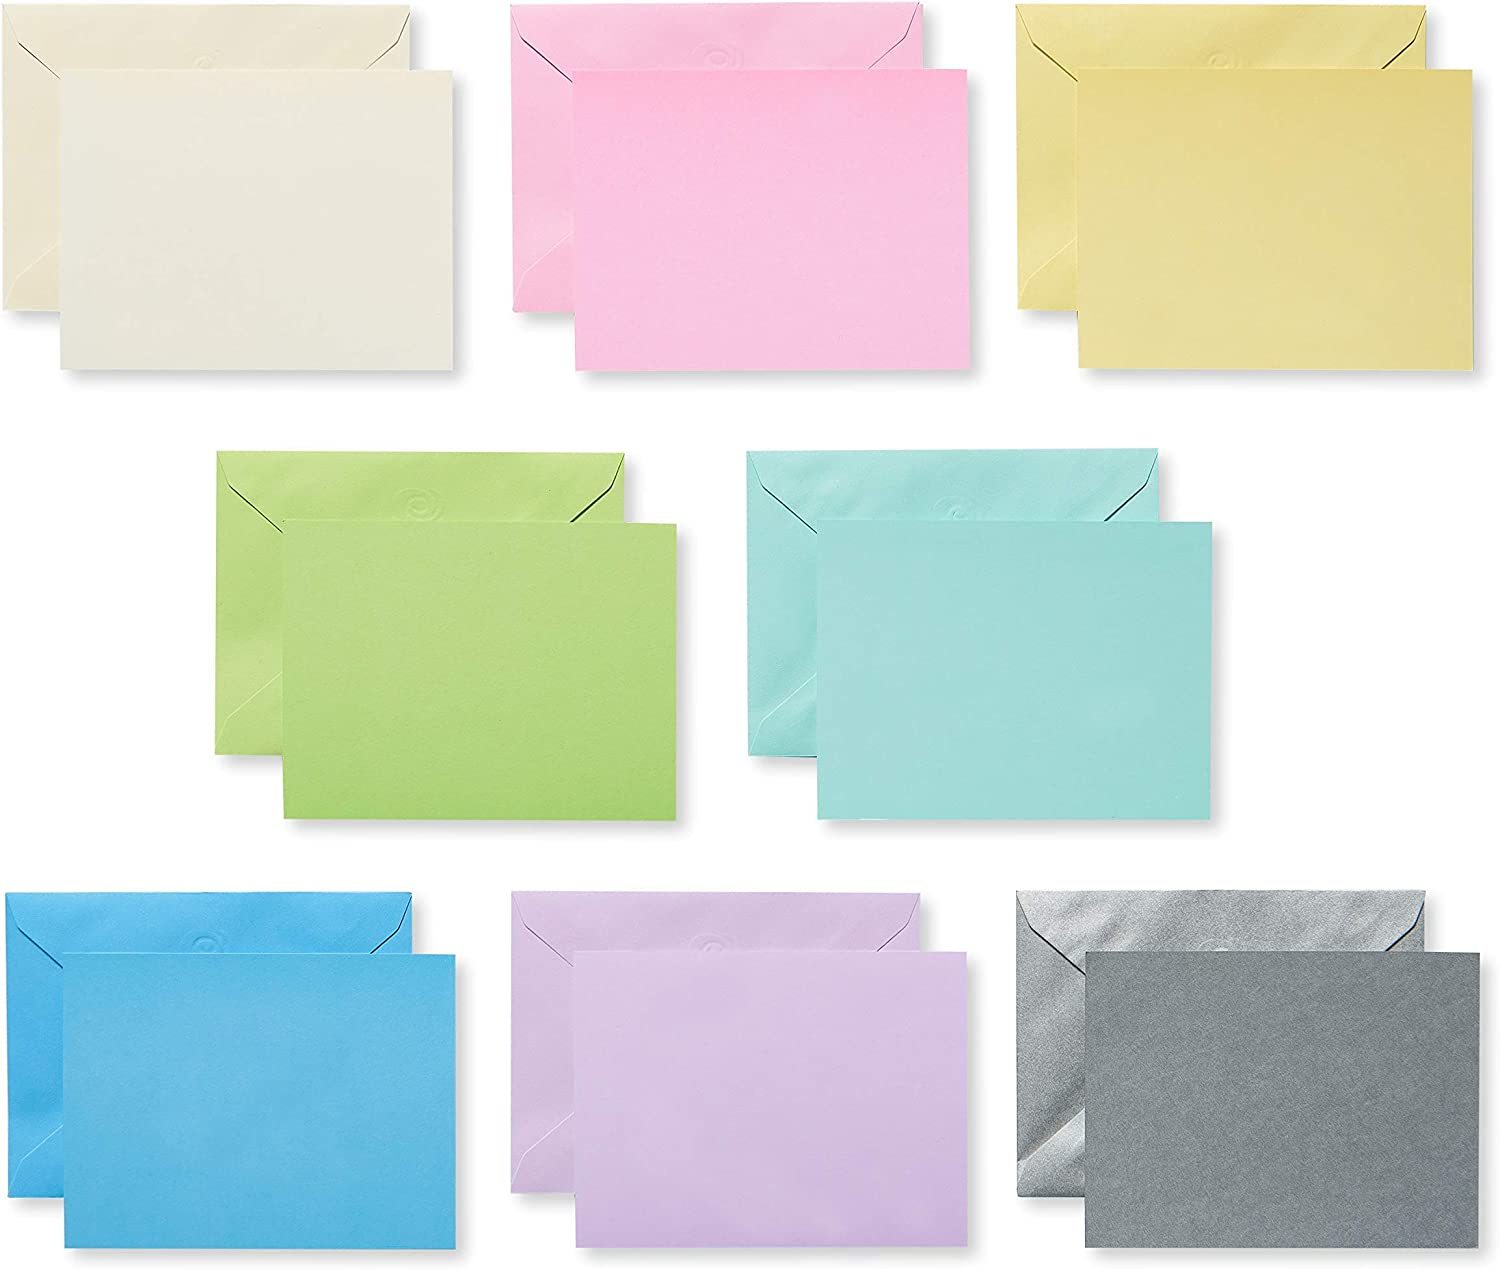 American Greetings Single Panel Blank Cards with Envelopes, Pastel (100-Count)